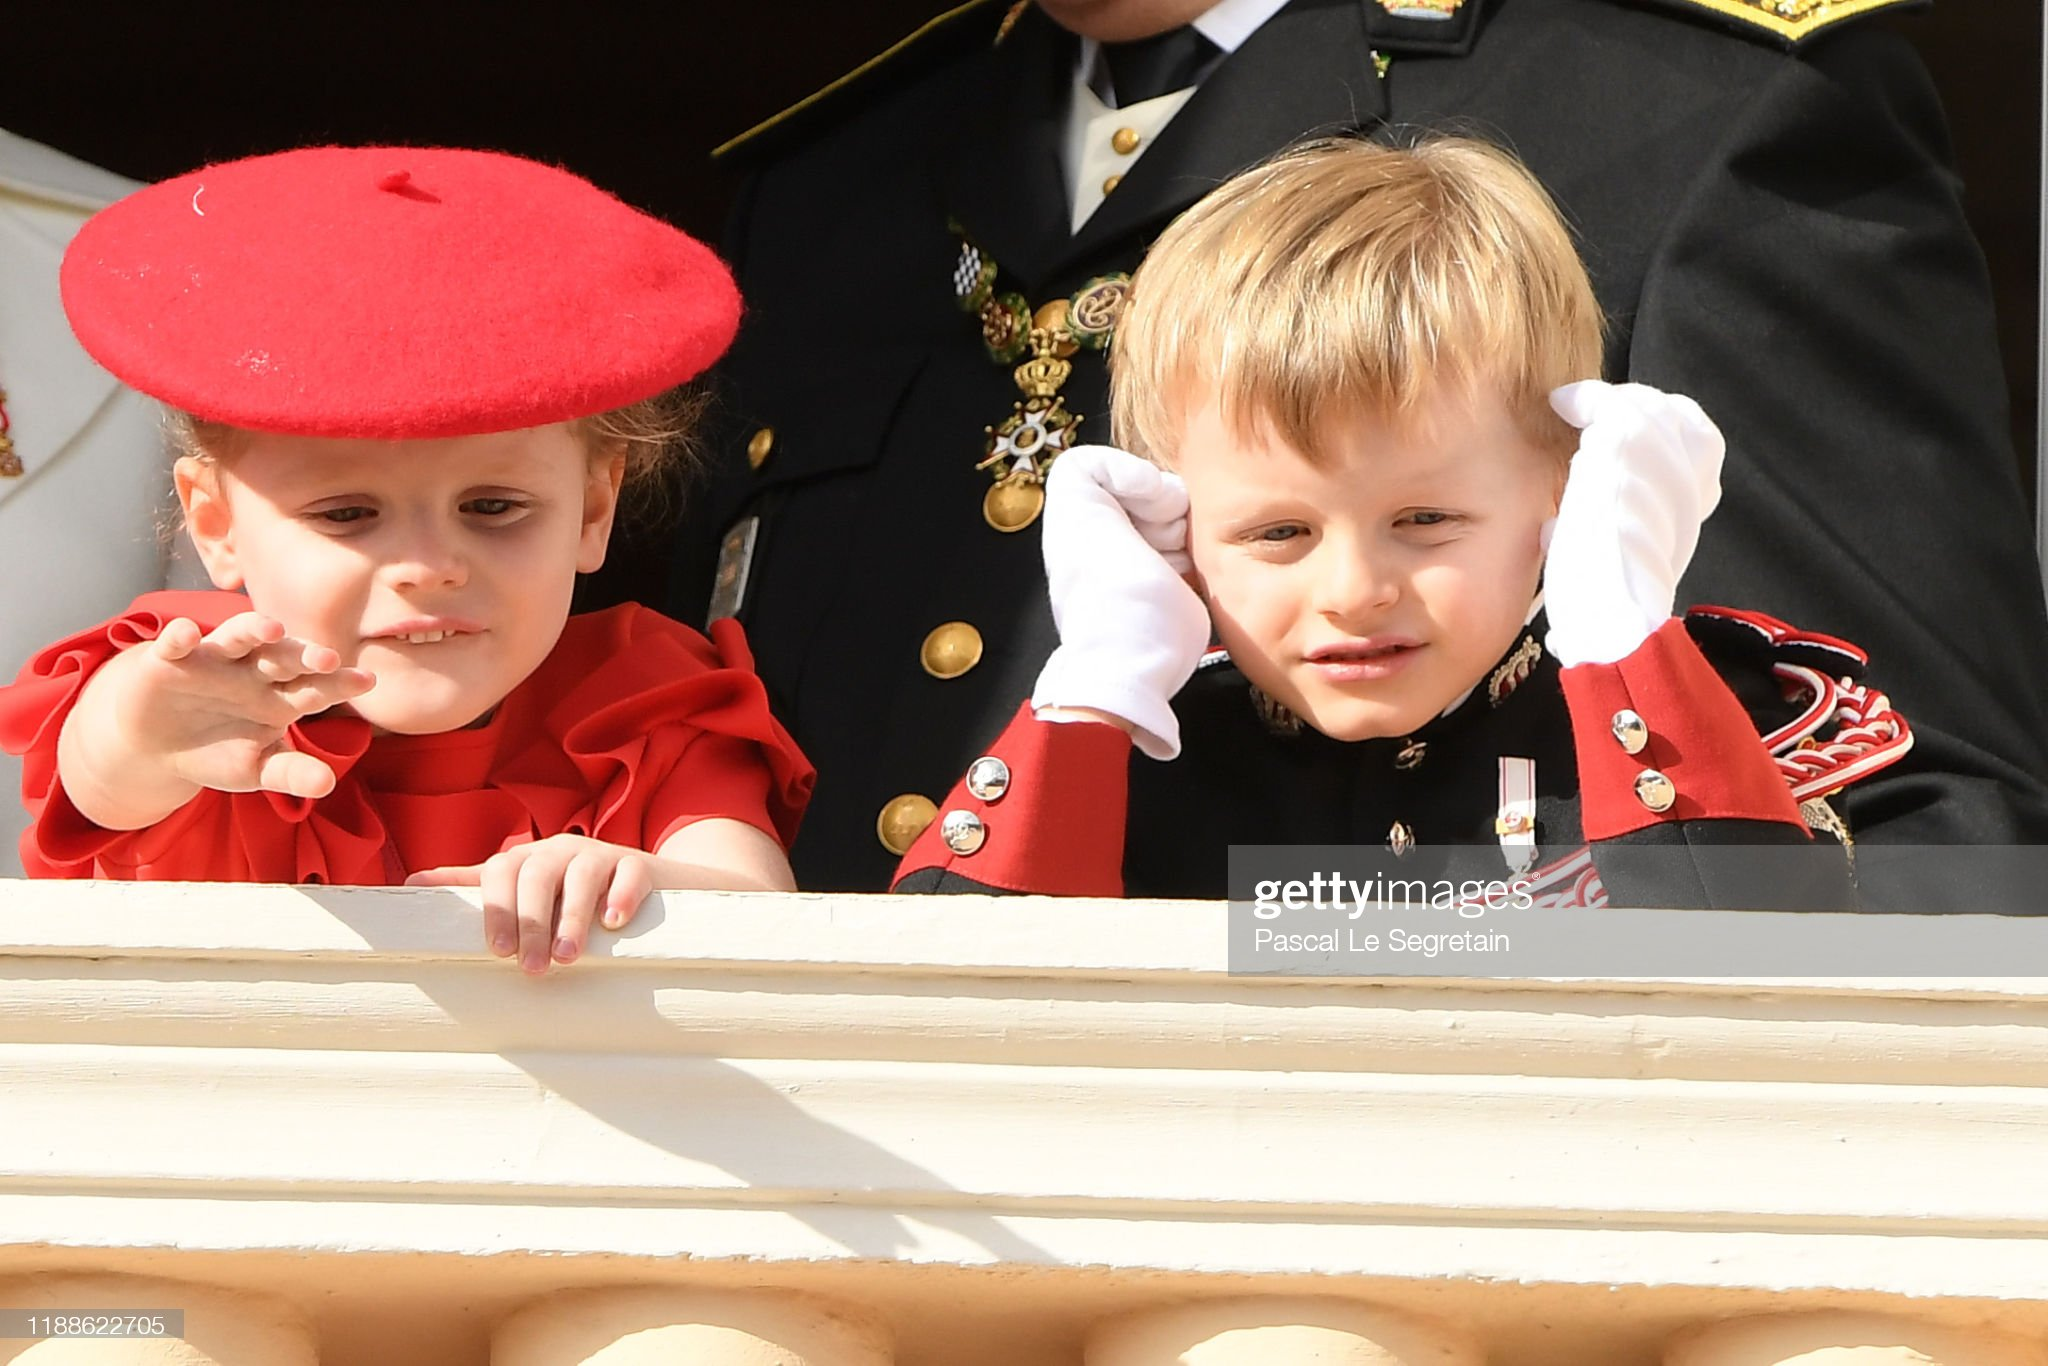 prince-jacques-of-monaco-and-princess-gabriela-of-monaco-attend-the-picture-id1188622705